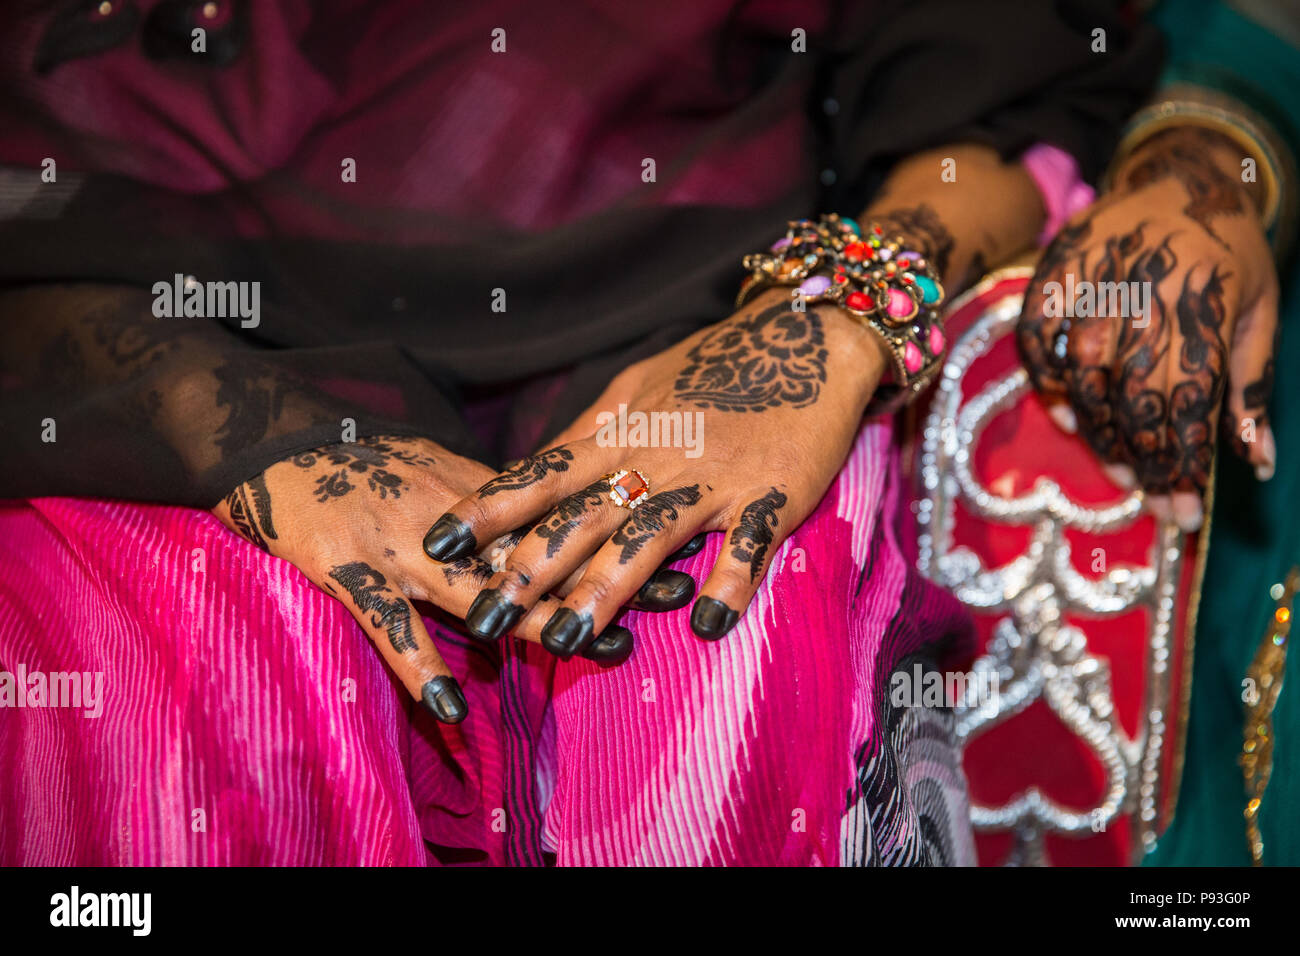 Black Henna Hands Drawings on Women for African Wedding Ceremony with Big Rings Stock Photo